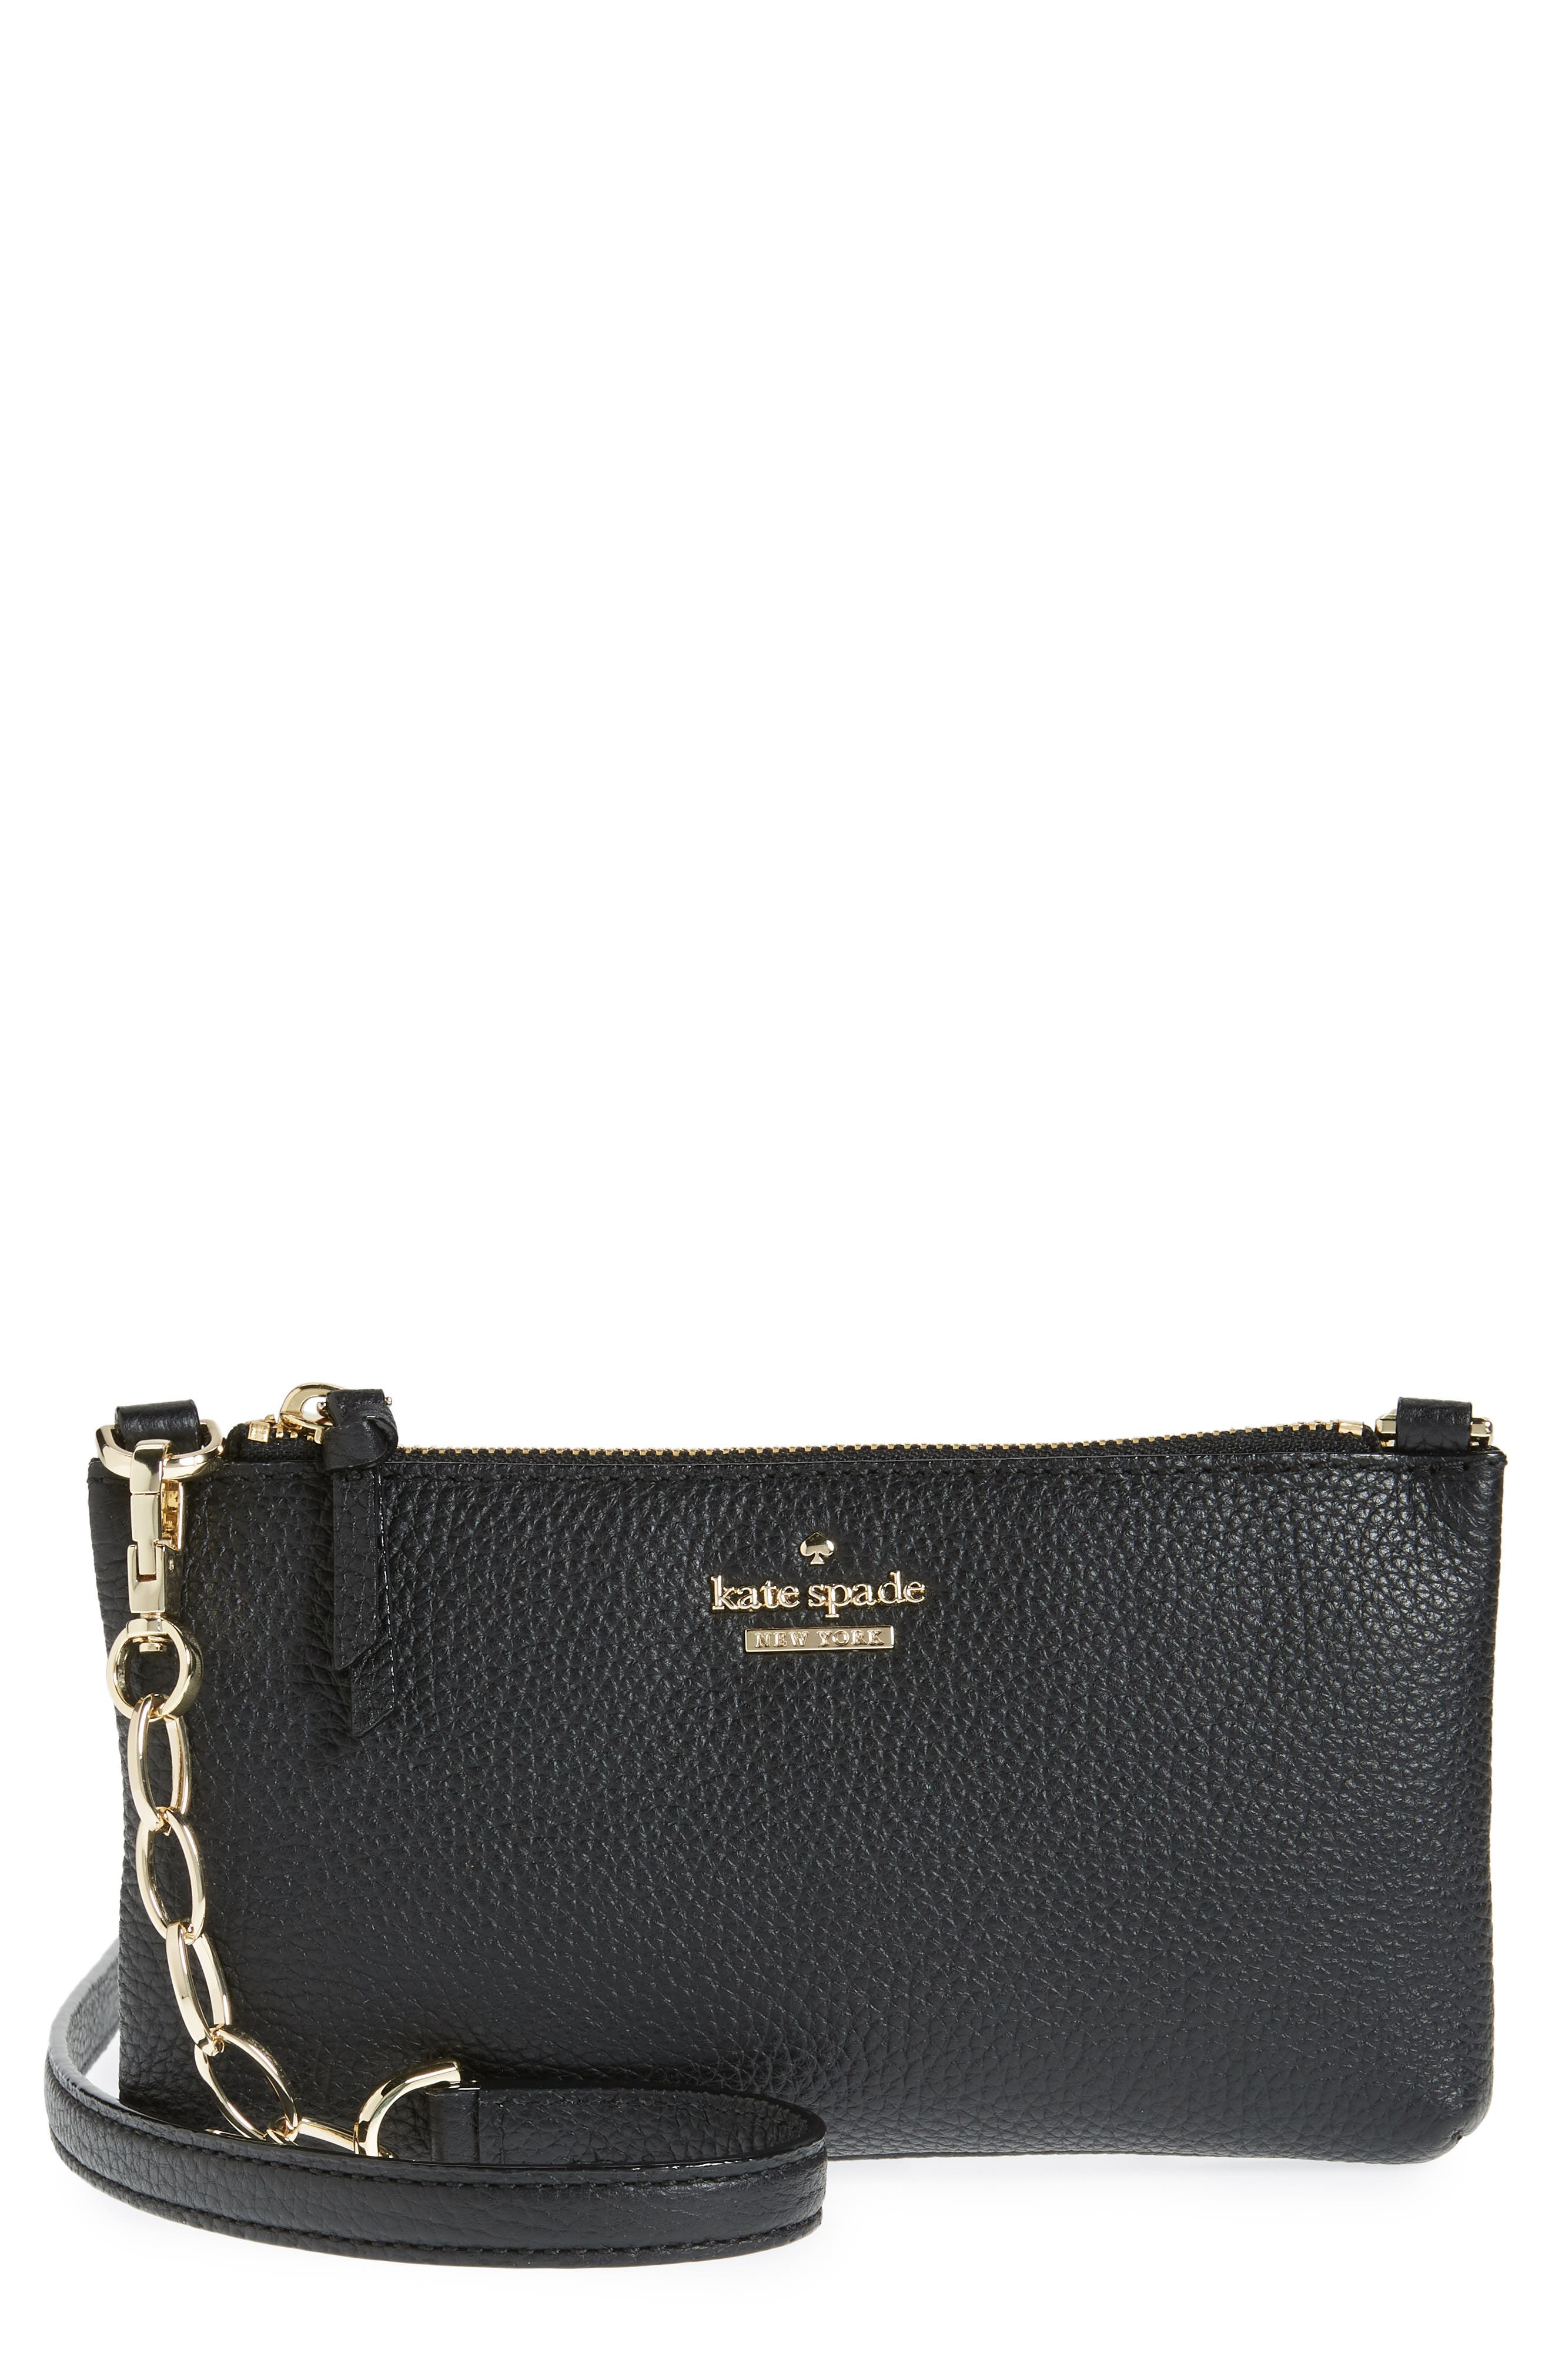 jackson street – dolores leather crossbody bag,                             Main thumbnail 1, color,                             Black